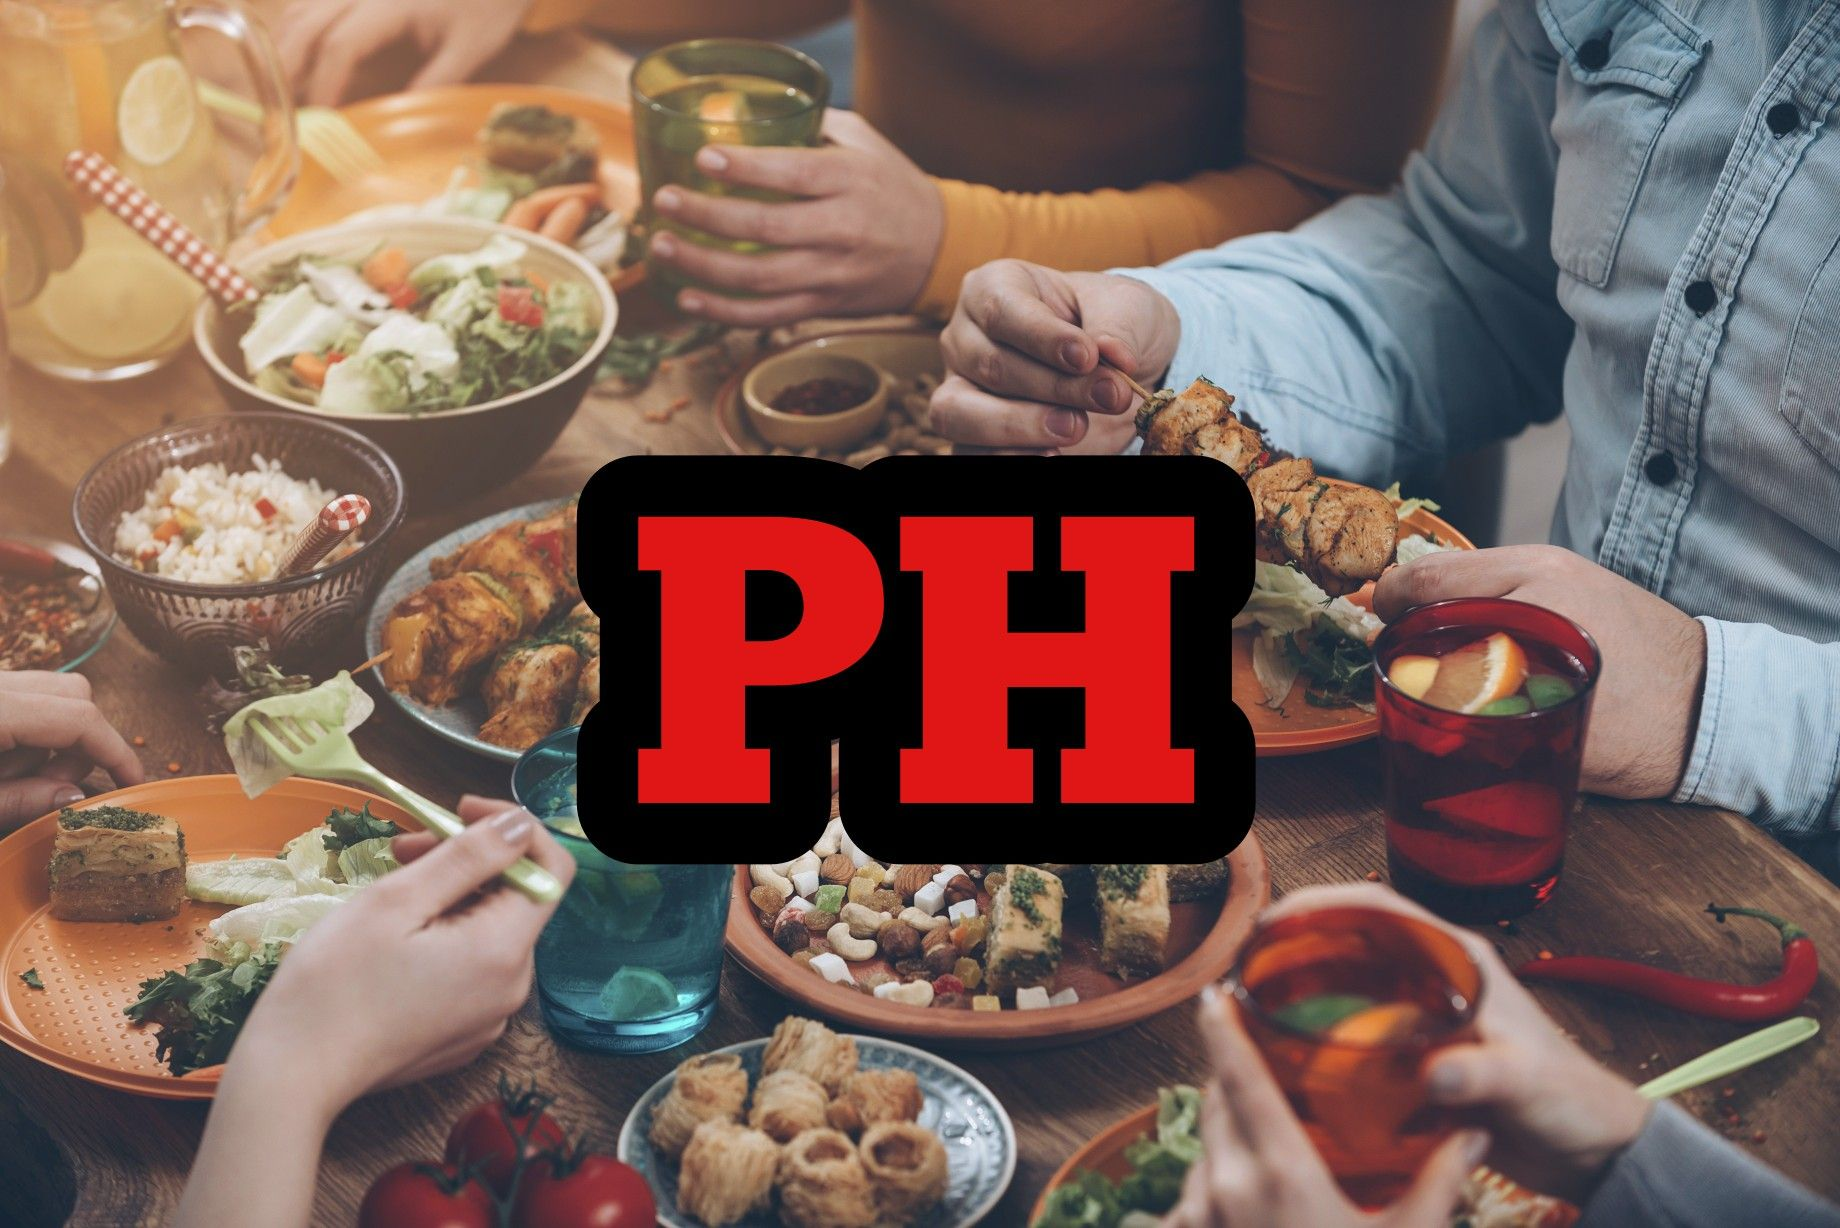 Pantryhound Com Is Like An Online Farmers Market Where You Can Find Unique Handcrafted Foods From Across The United States If You Ar Food Eat Food Photography